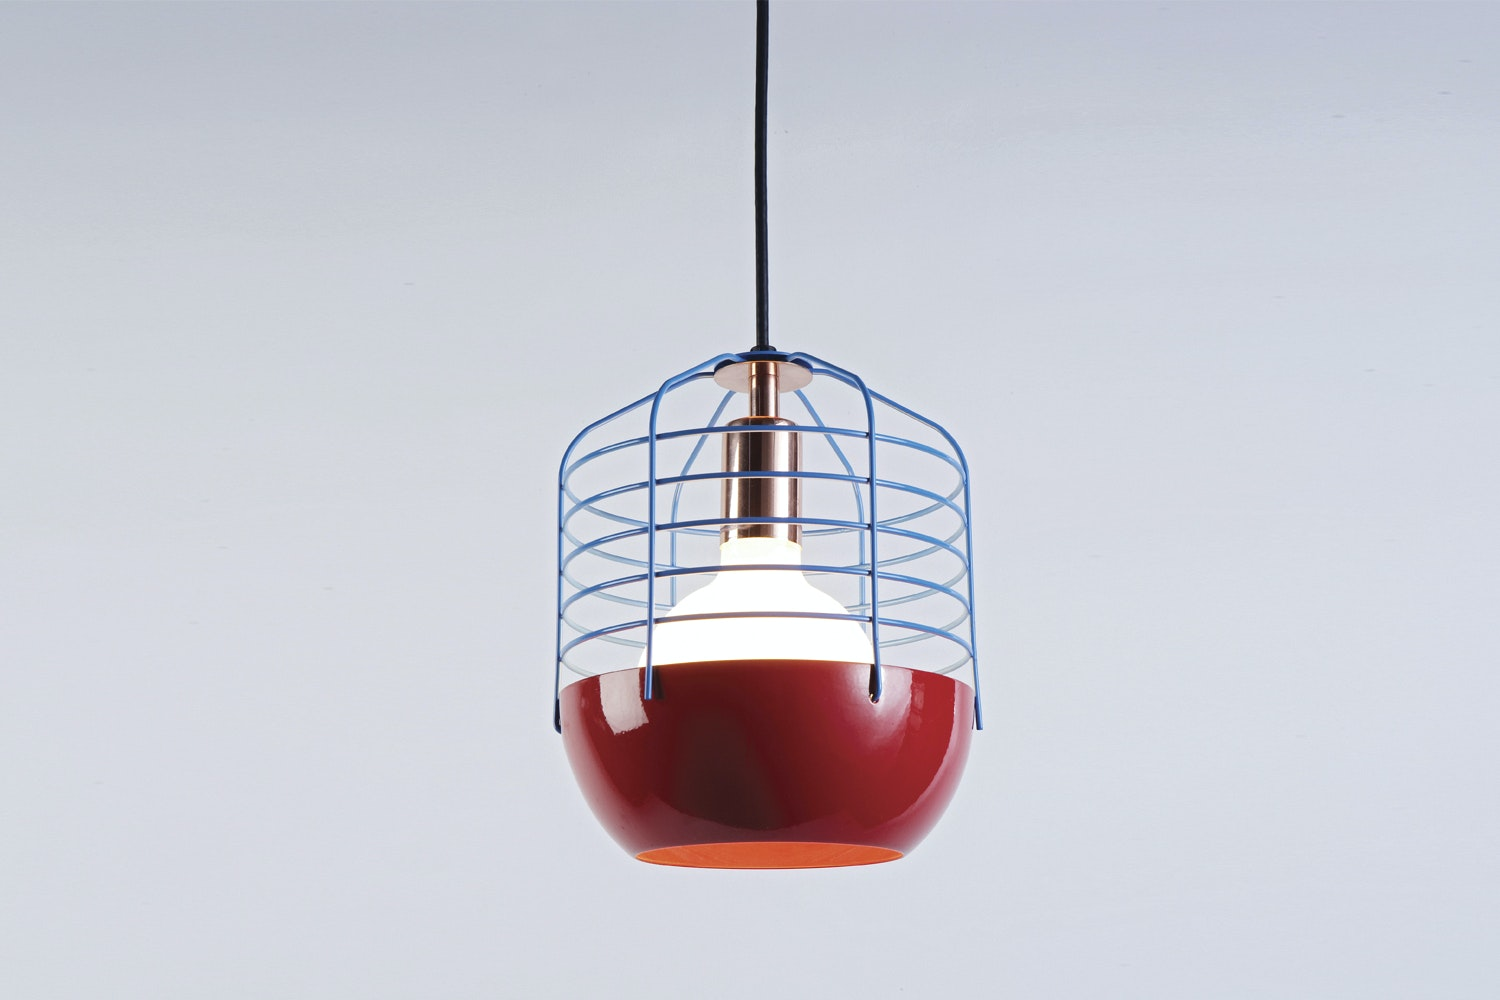 Bluff City Suspension Lamp by Jonah Takagi for Roll & Hill